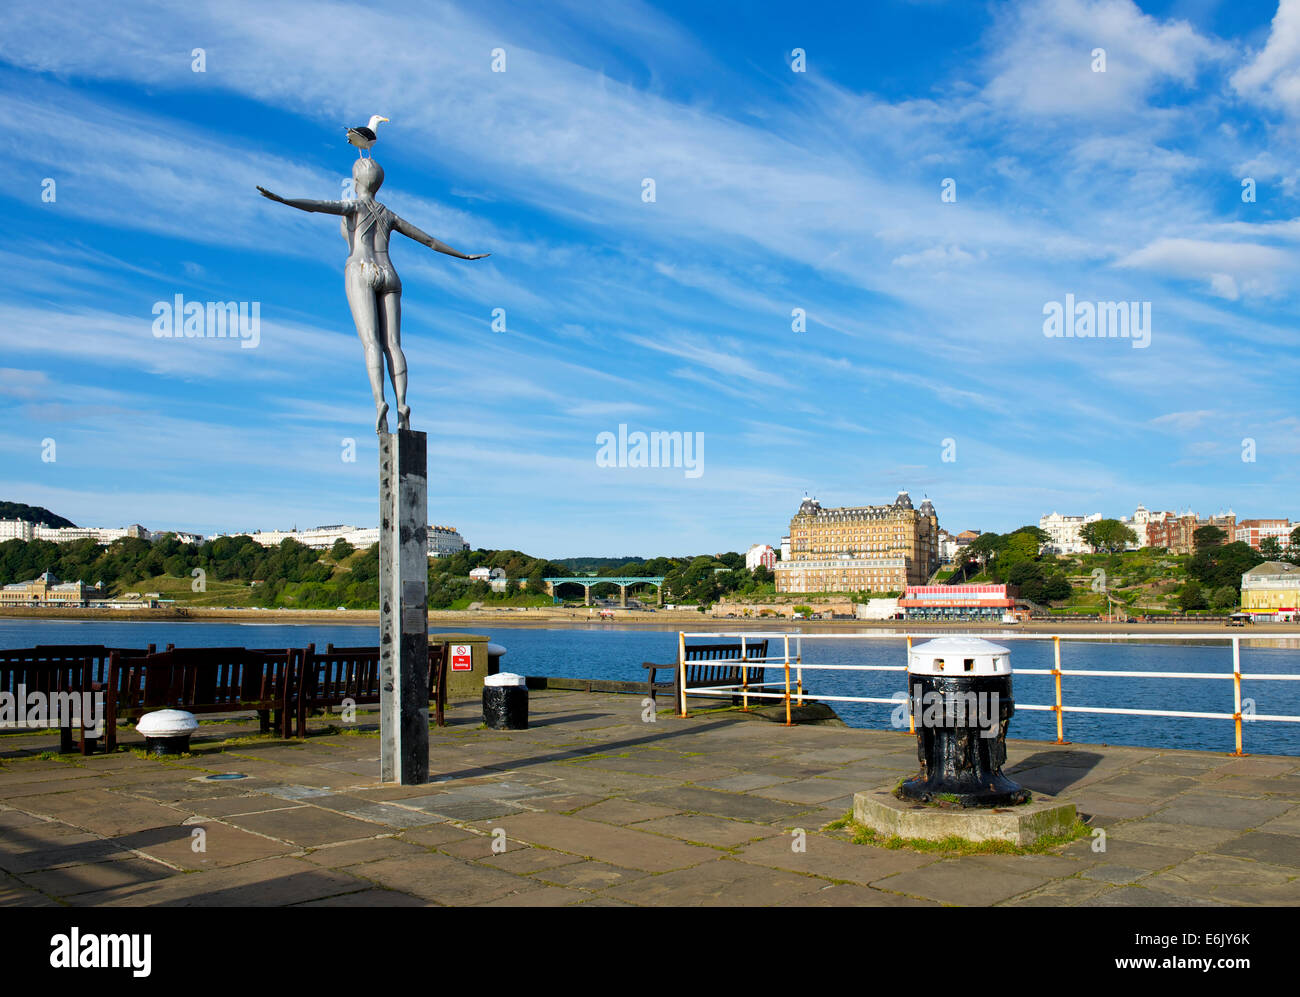 Sculpture - The Bathing Belle - by artist Craig Knowles, at the end of Vincent's Pier, Scarborough, North Yorkshire, - Stock Image